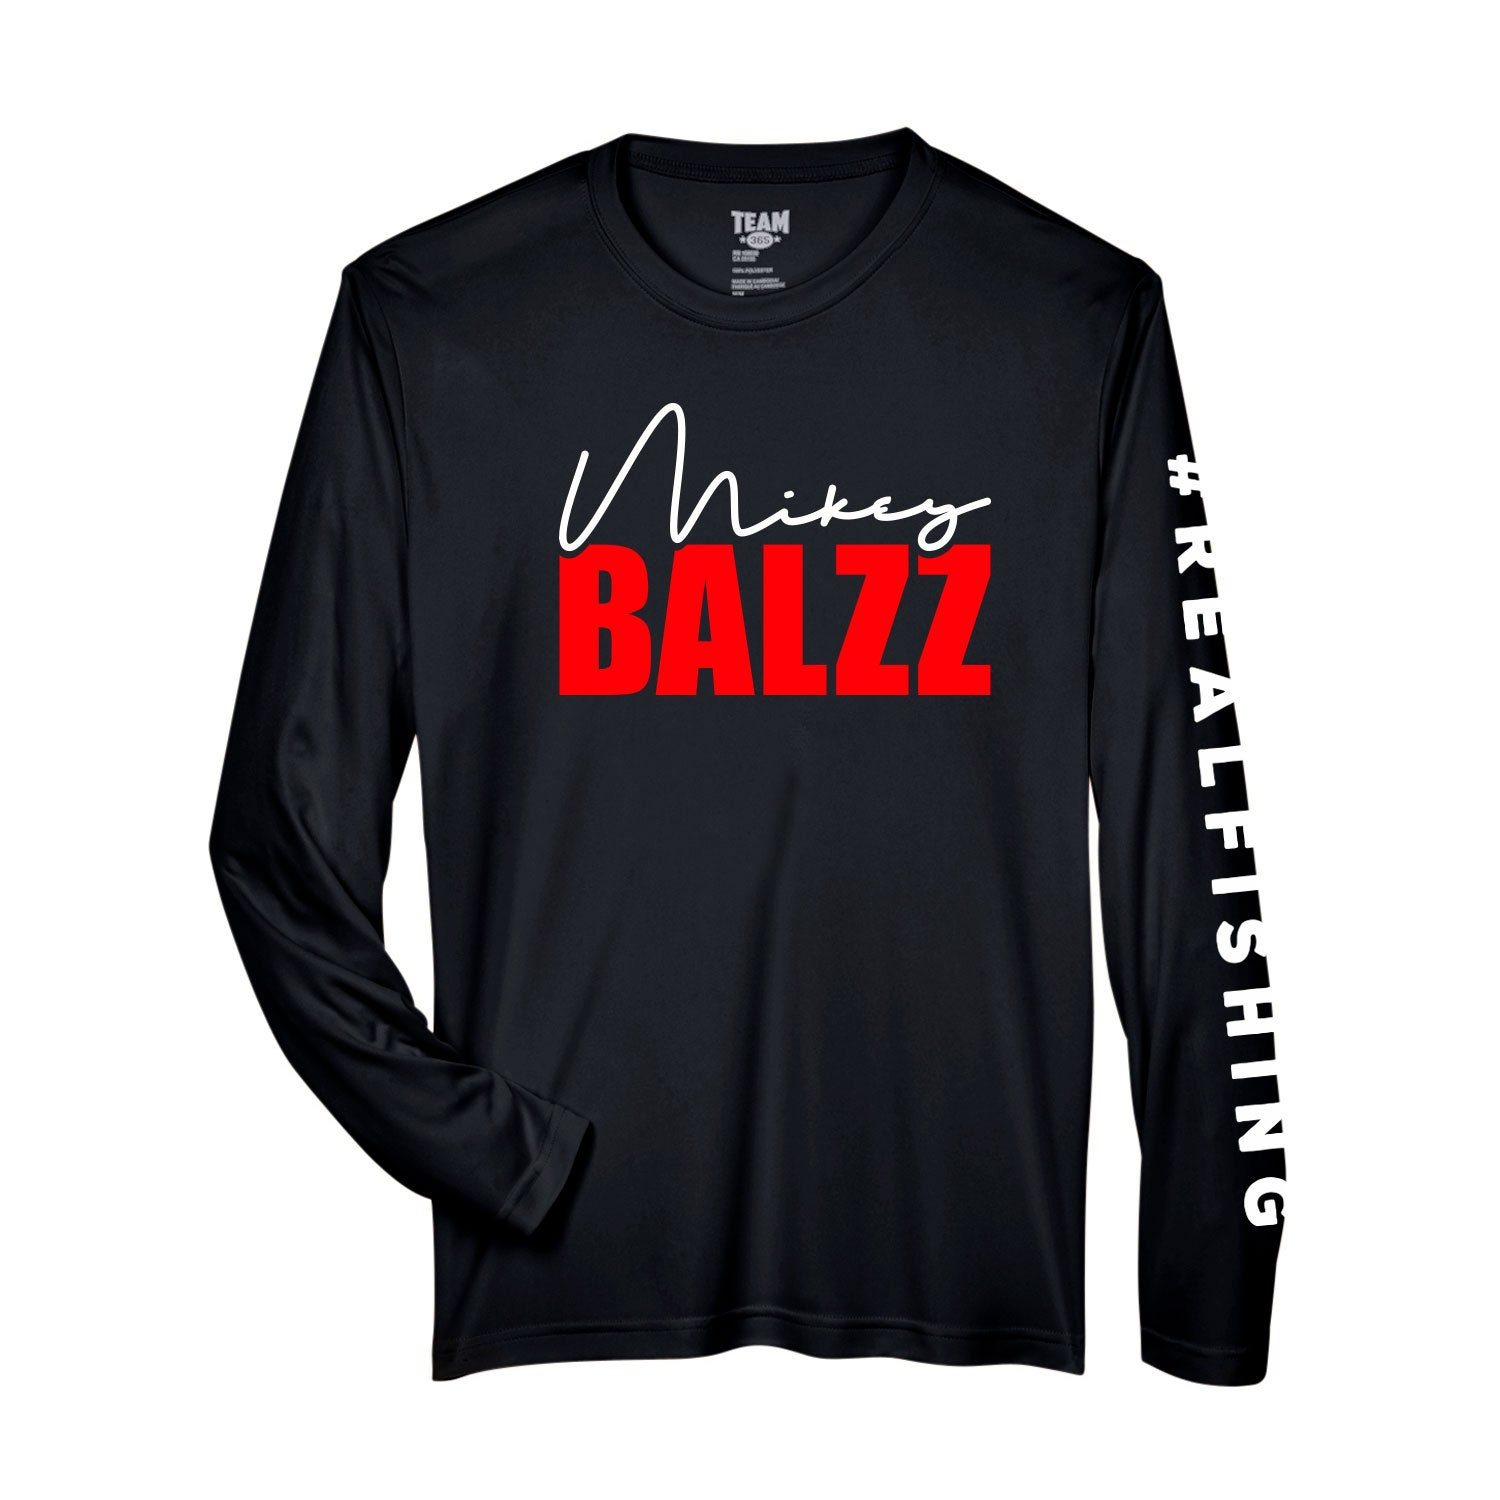 Signature Mikey Balzz - Moisture-Wicking and UV Protection - Long Sleeve Shirt - Zone Performance Long Sleeve with Vinyl Sleeves and Chest Print. Stay out of the sun with this Bass Attitude Fishing - Sun Blocking (UV Protection) Performance Shirt. Stay Dry with Moisture-wicking poly material.